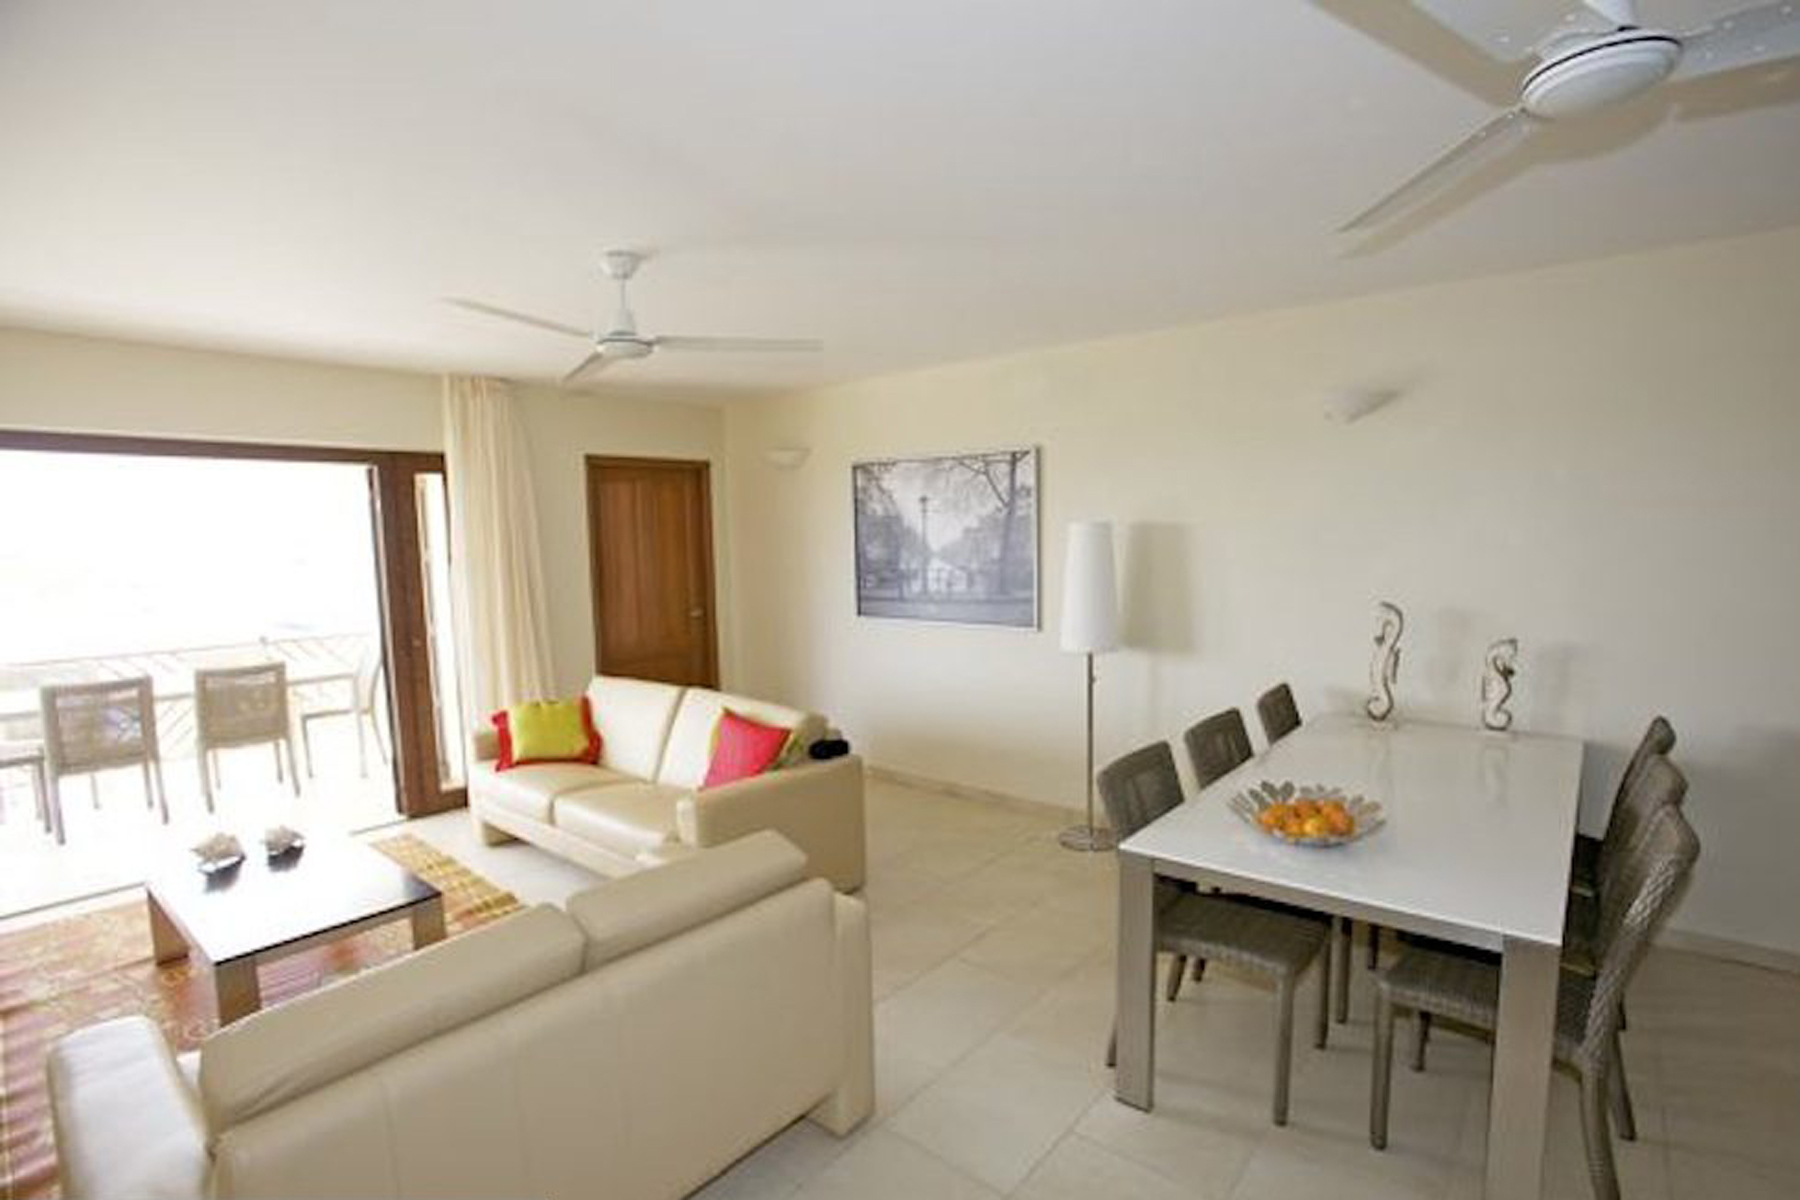 Additional photo for property listing at BonBida Apartment Kralendijk,  Bonaire